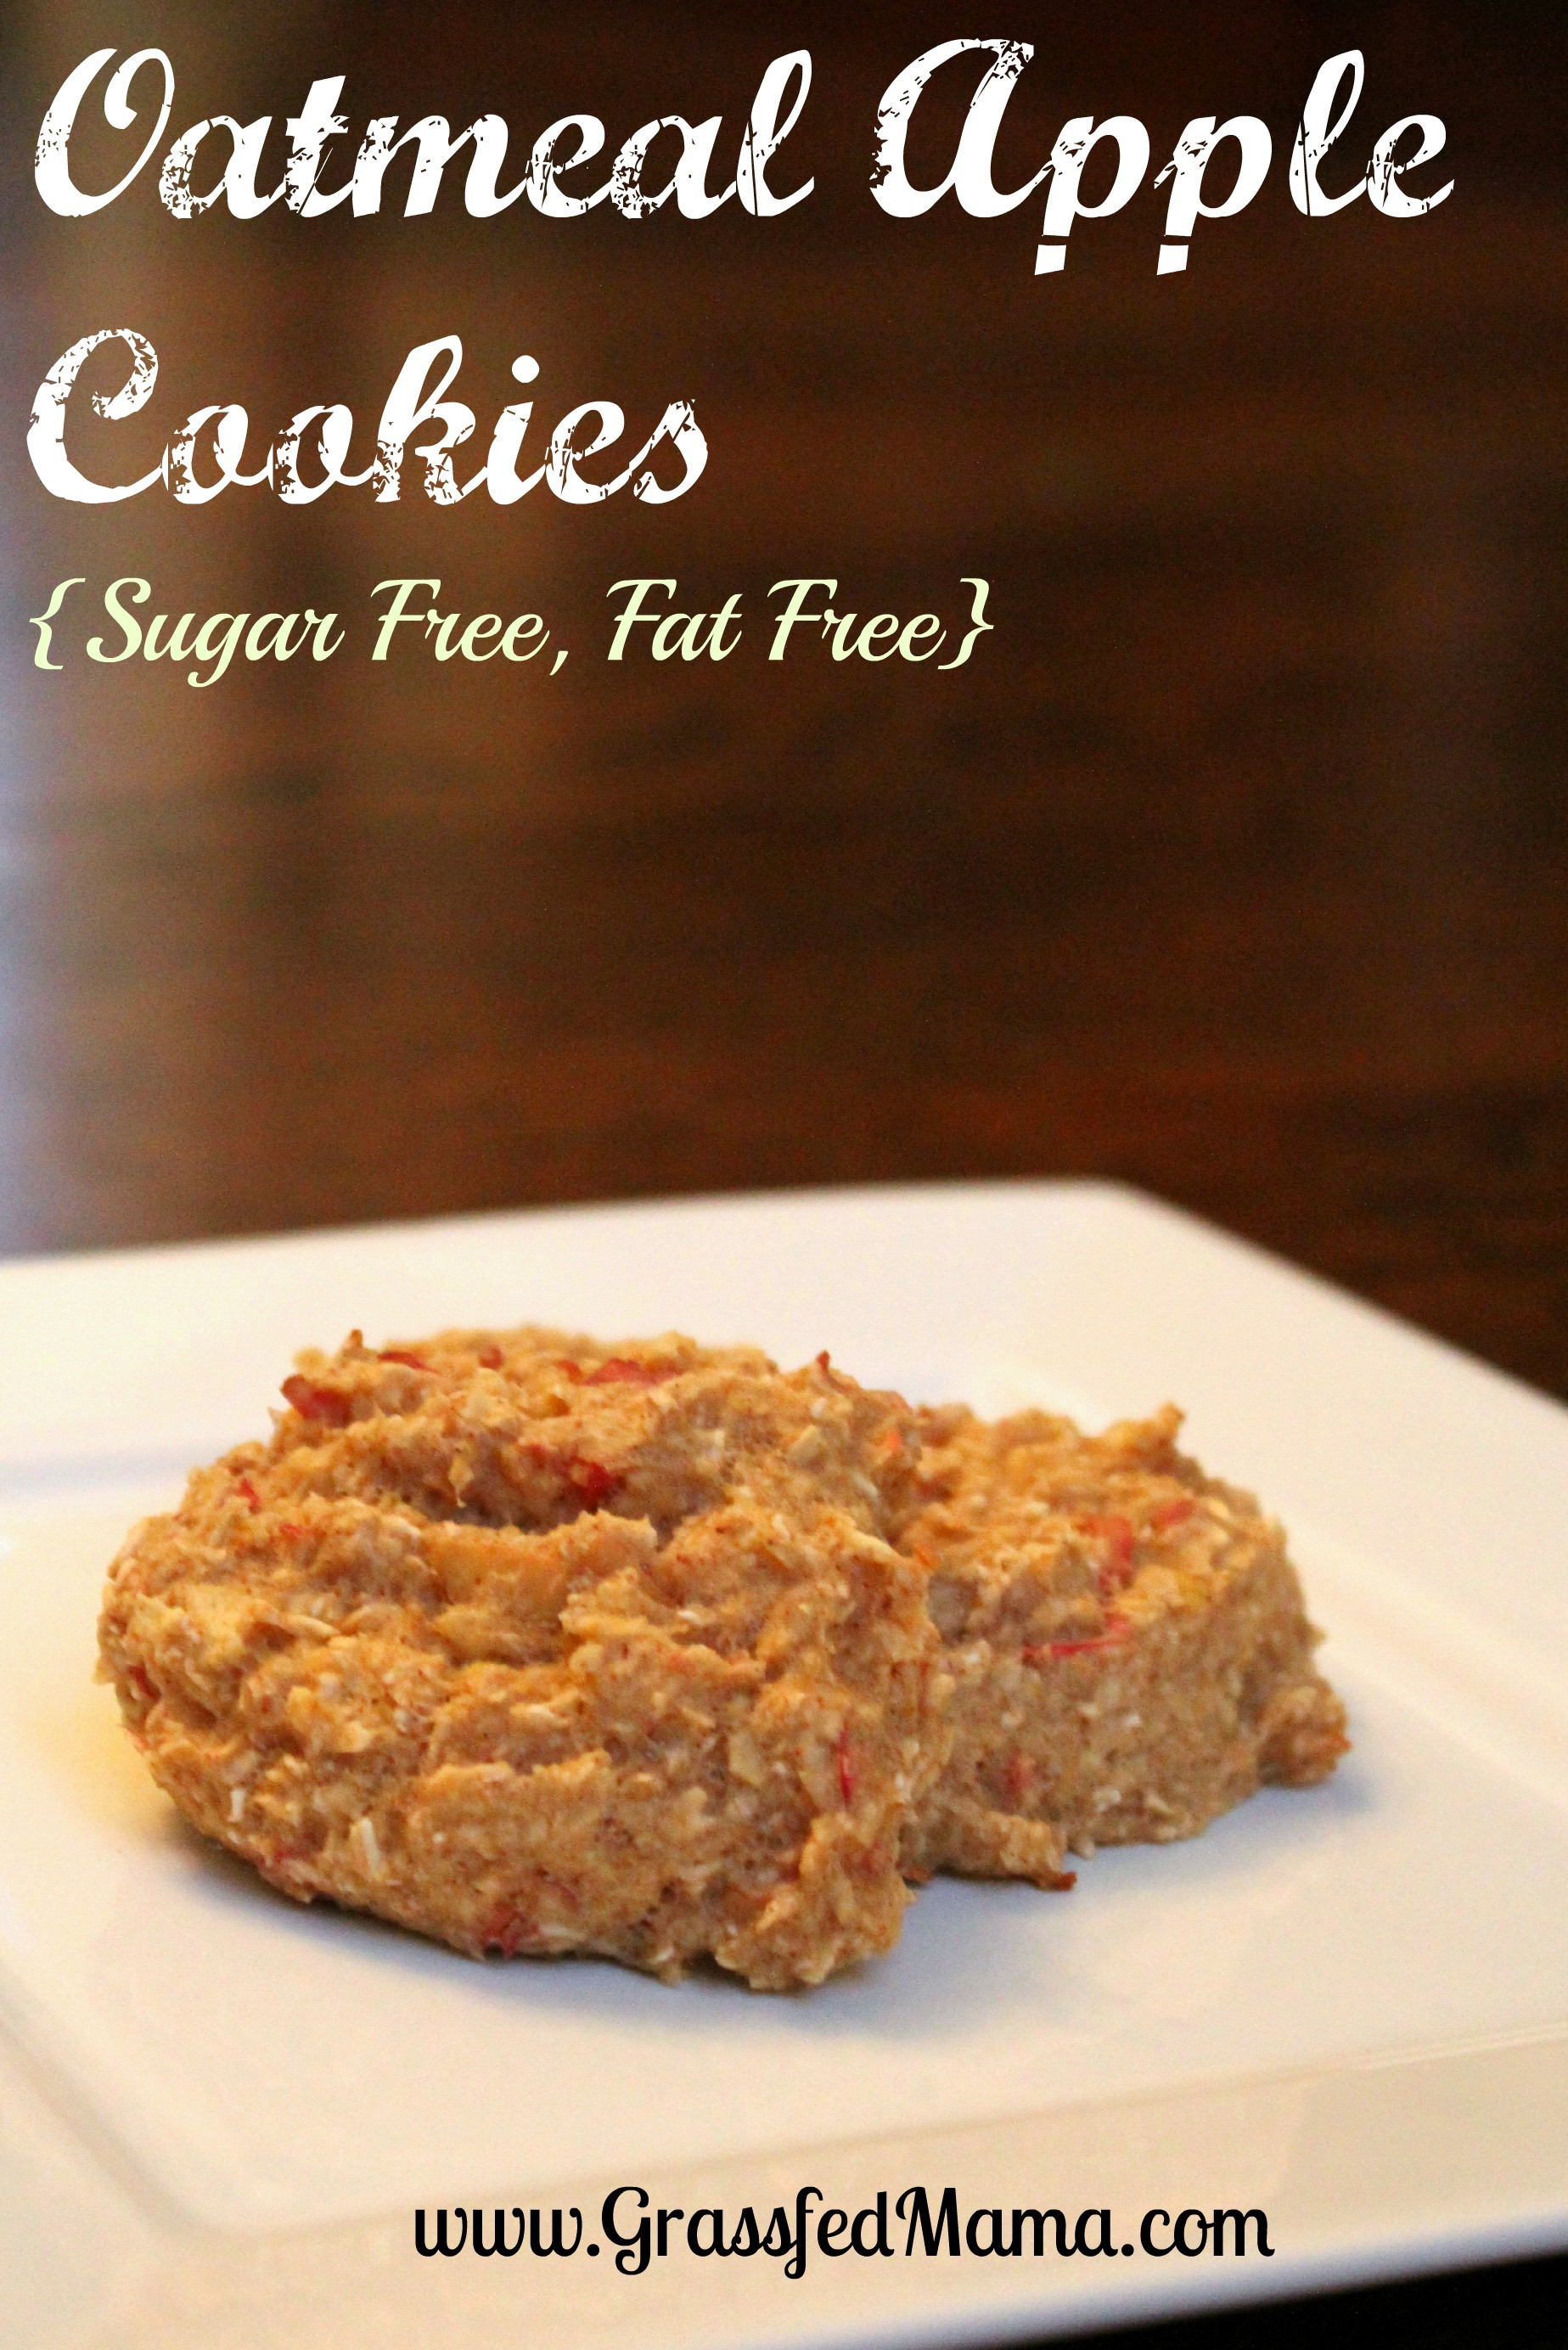 Low Fat Cookie Recipes  Low Fat Low Sugar Oatmeal Apple Cookies Grassfed Mama